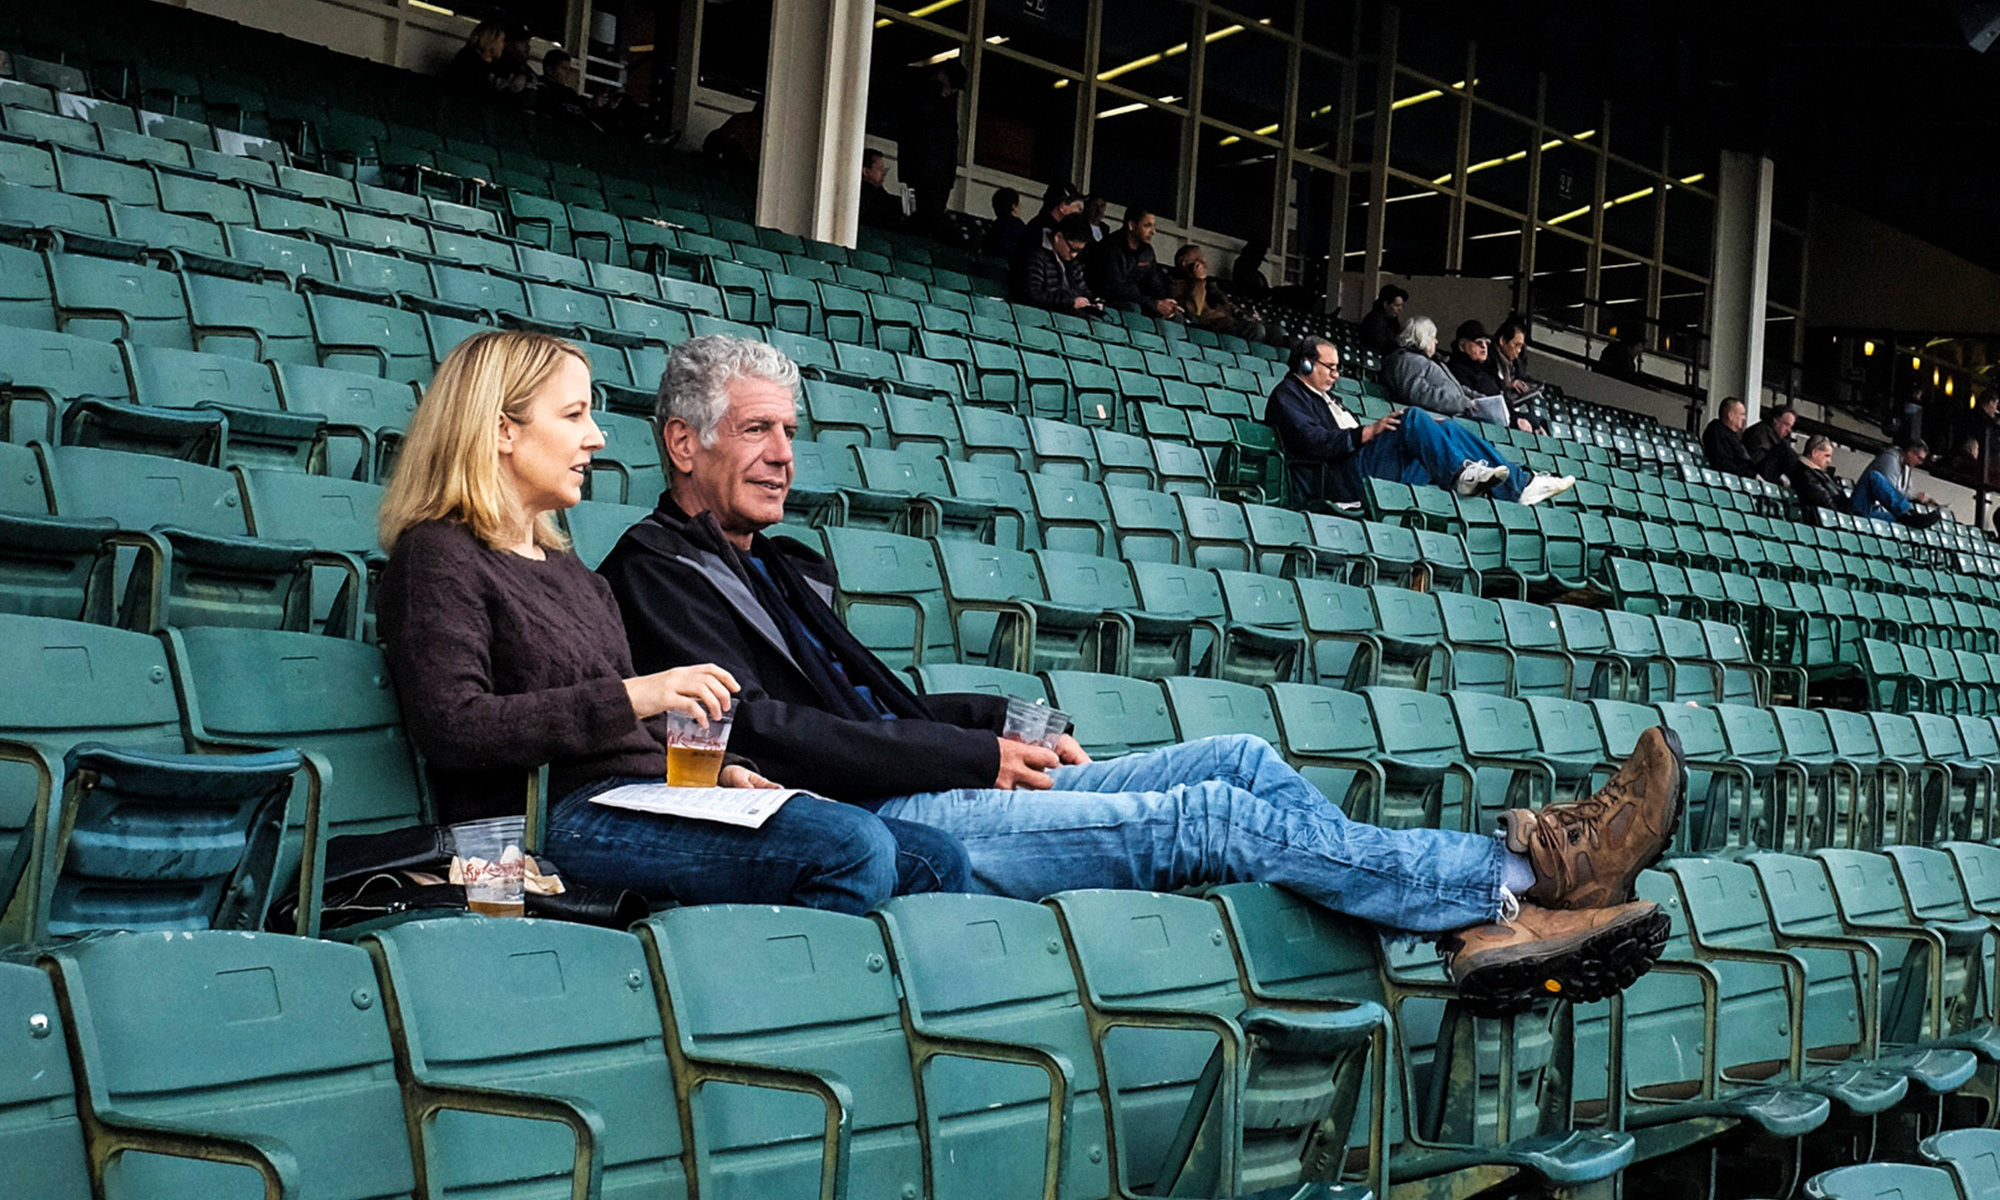 A woman and a man sit in green bleacher seats